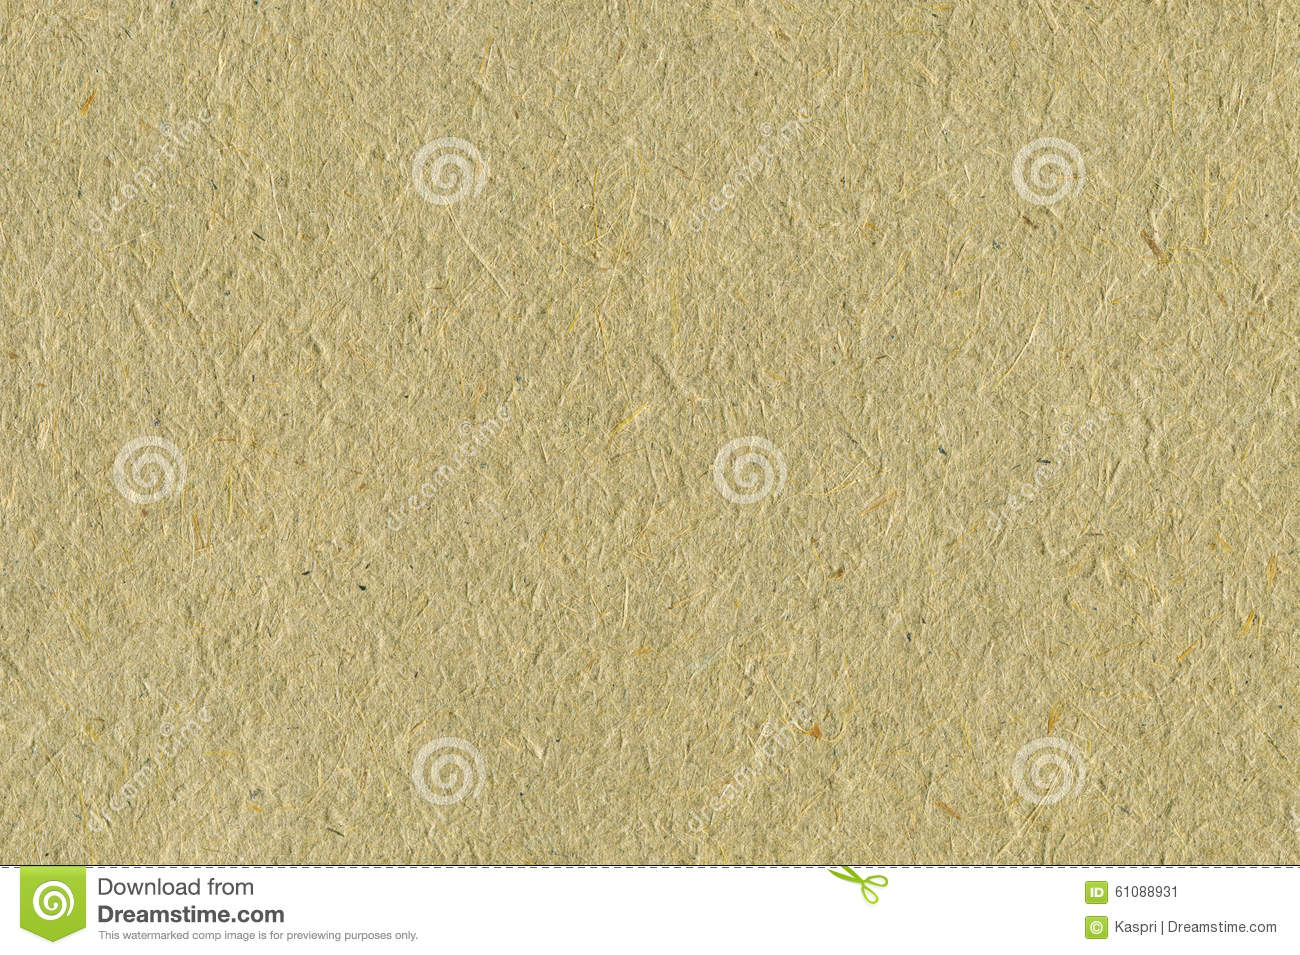 Recycled Paper Texture Background Pale Tan Beige Sepia Textured Macro Closeup Horizontal Straw Natural Rough Rice Copy Space